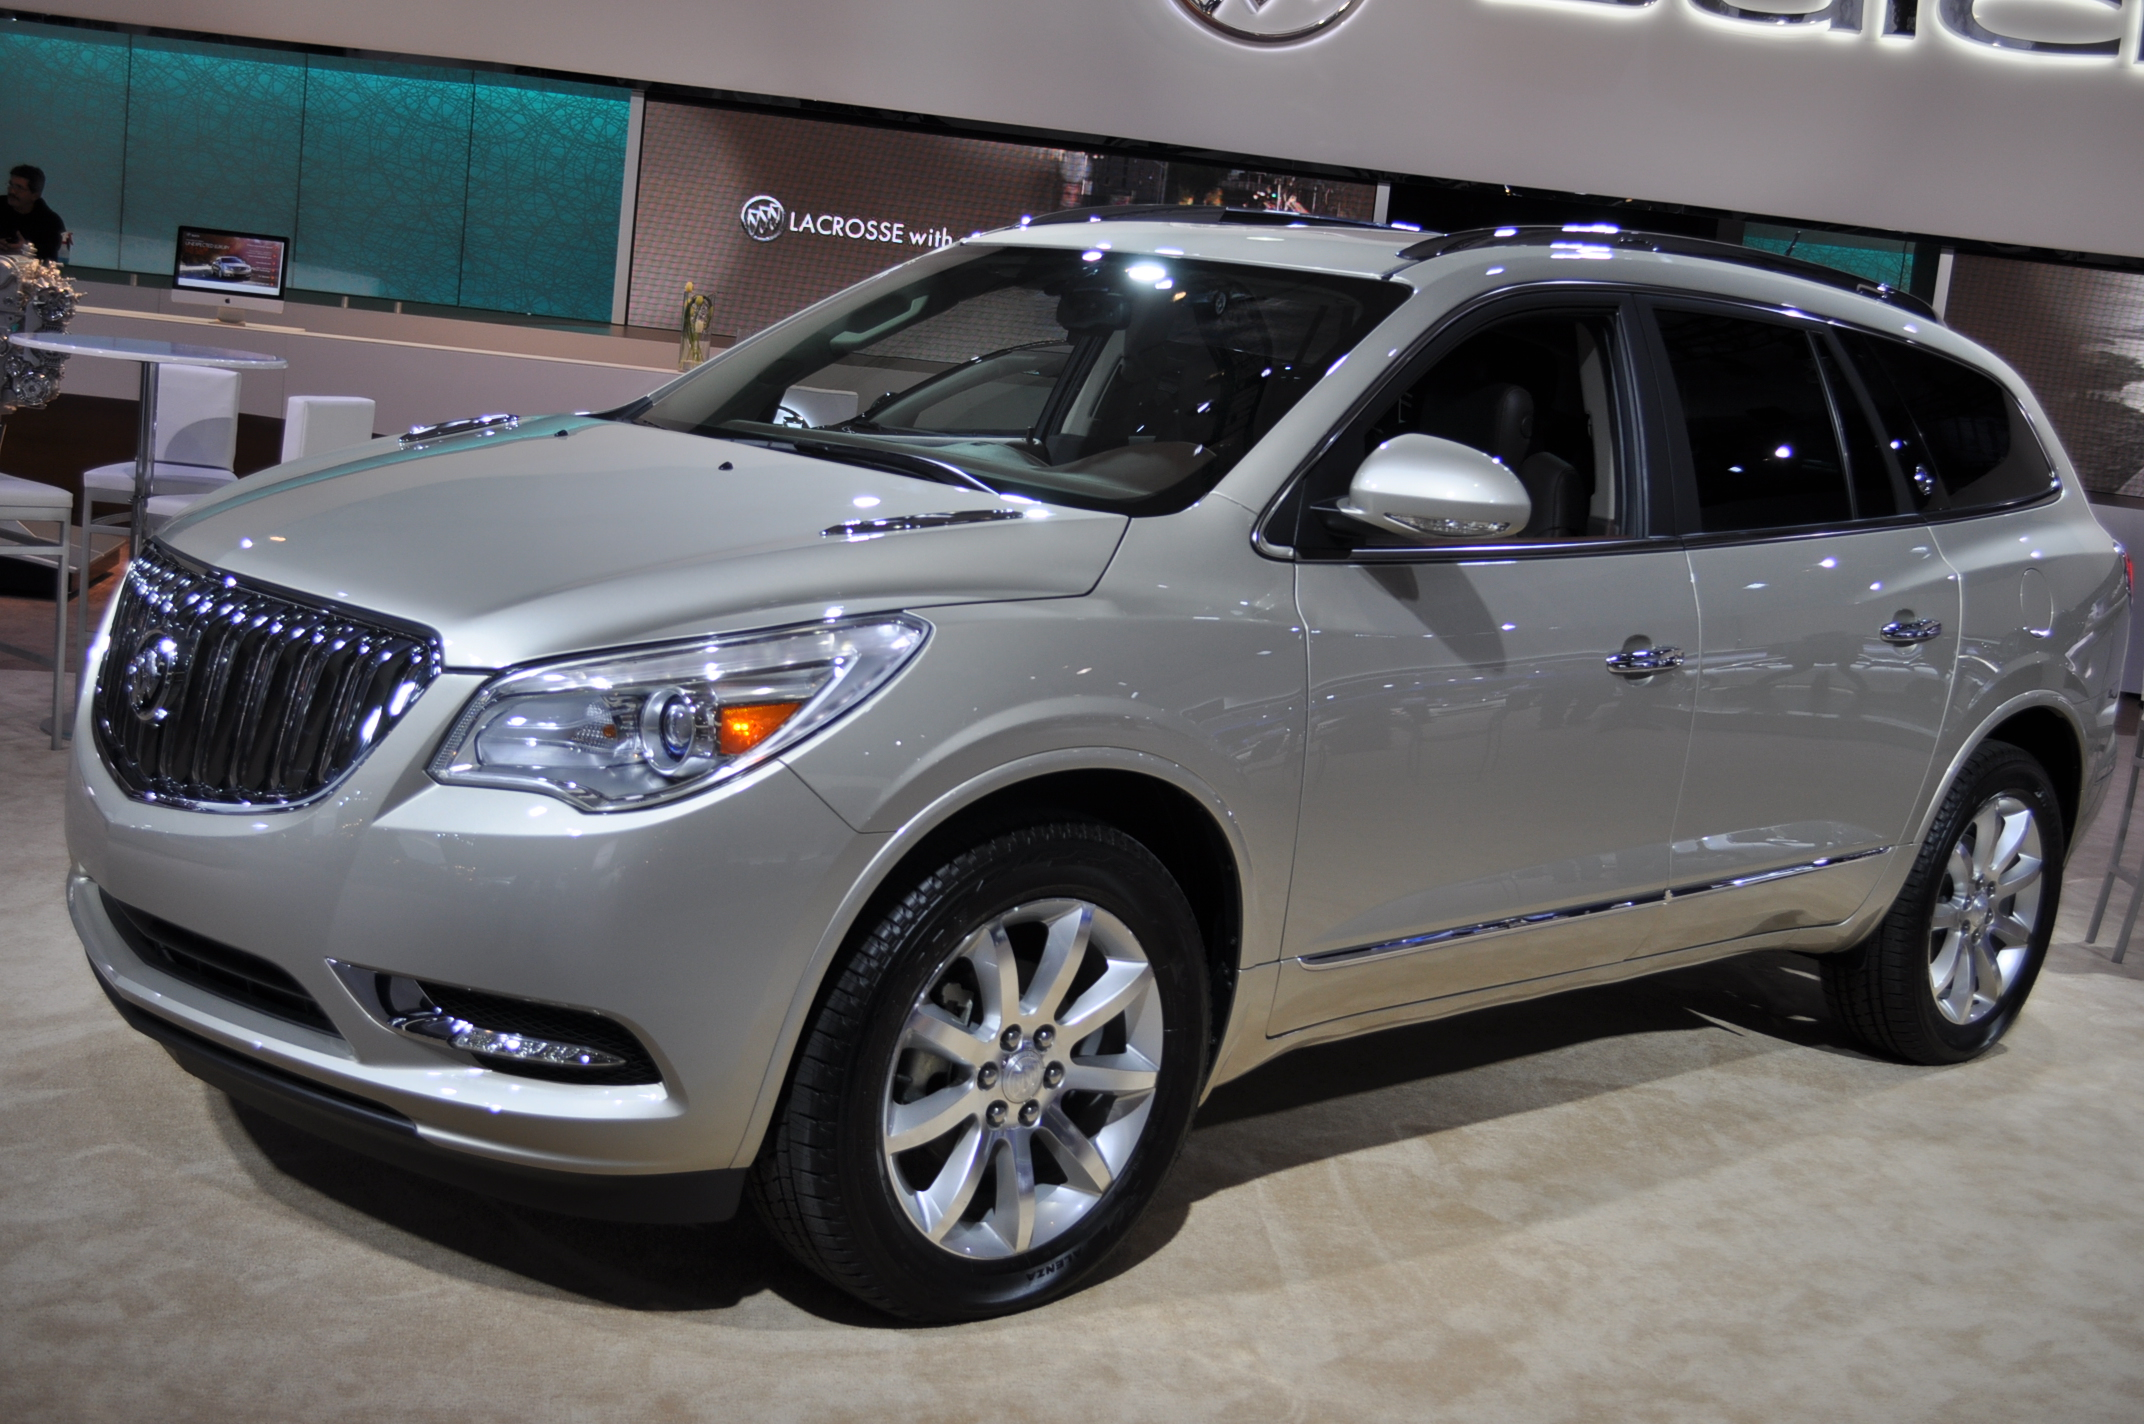 2013 buick enclave volkswagen recall shelby gt500 39 s future today 39 s car news. Black Bedroom Furniture Sets. Home Design Ideas